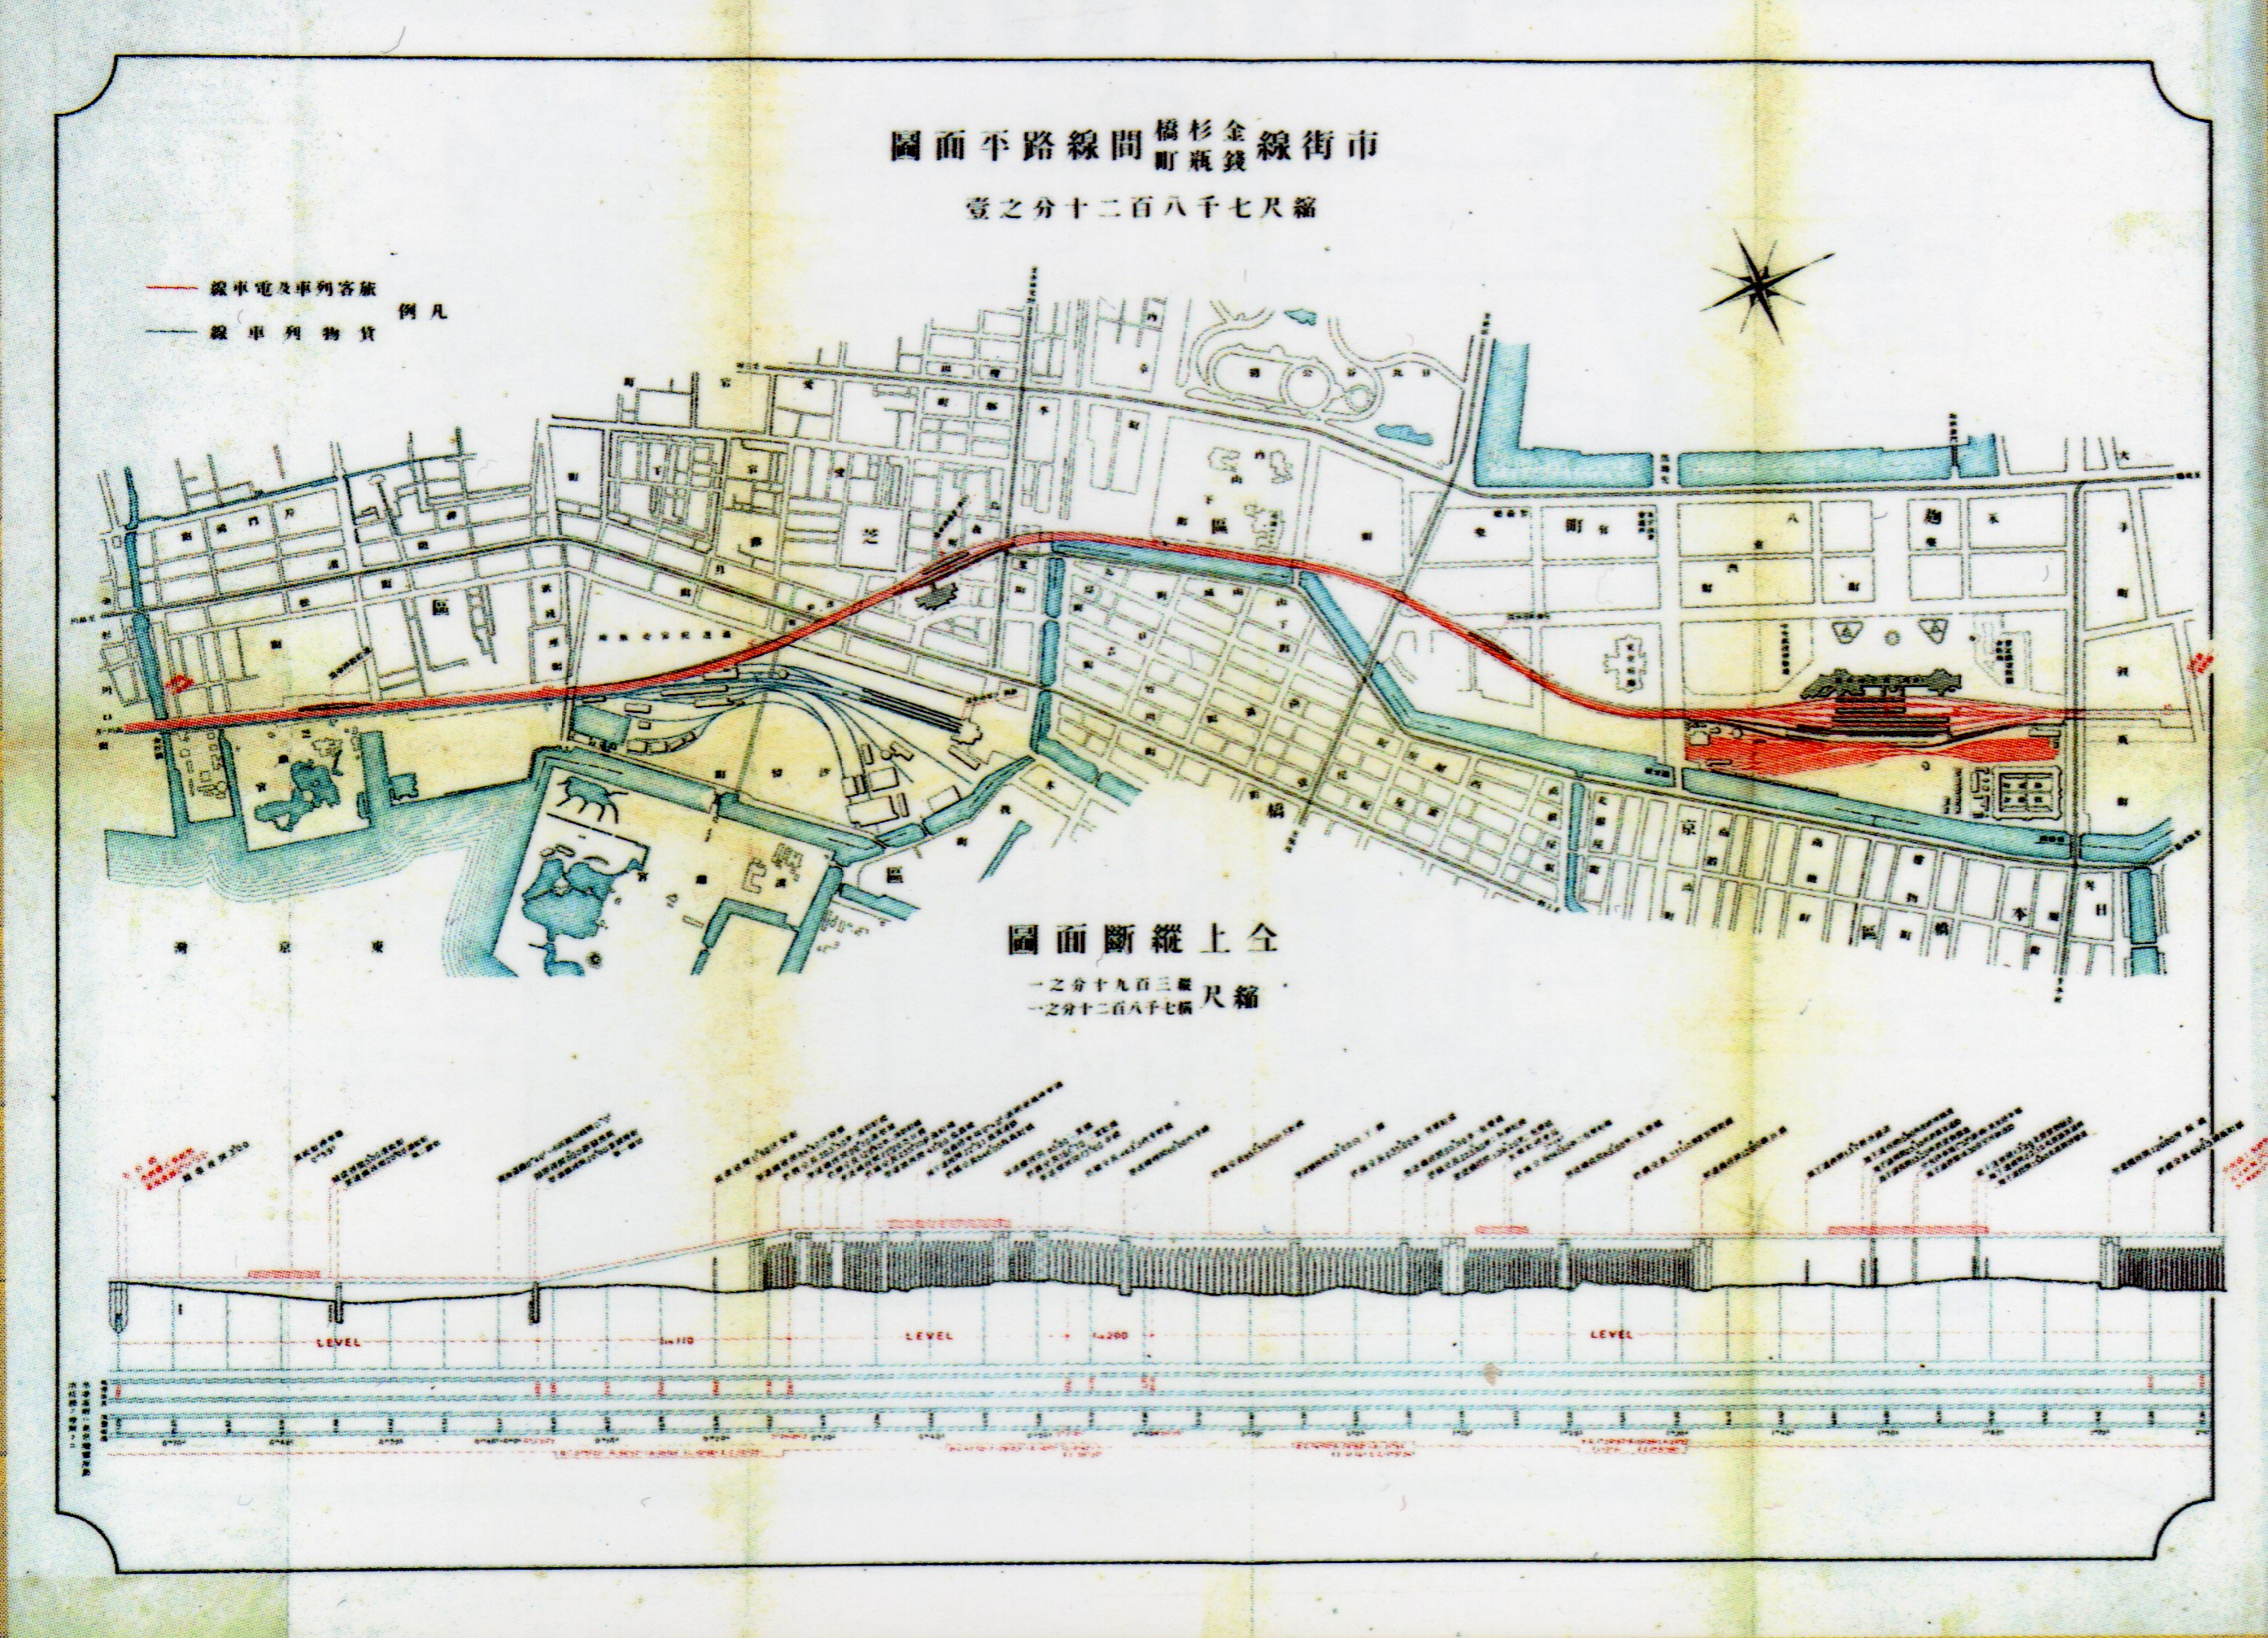 FileRoute map of Tokyo viaduct to Tokyo stationjpg Wikimedia Commons